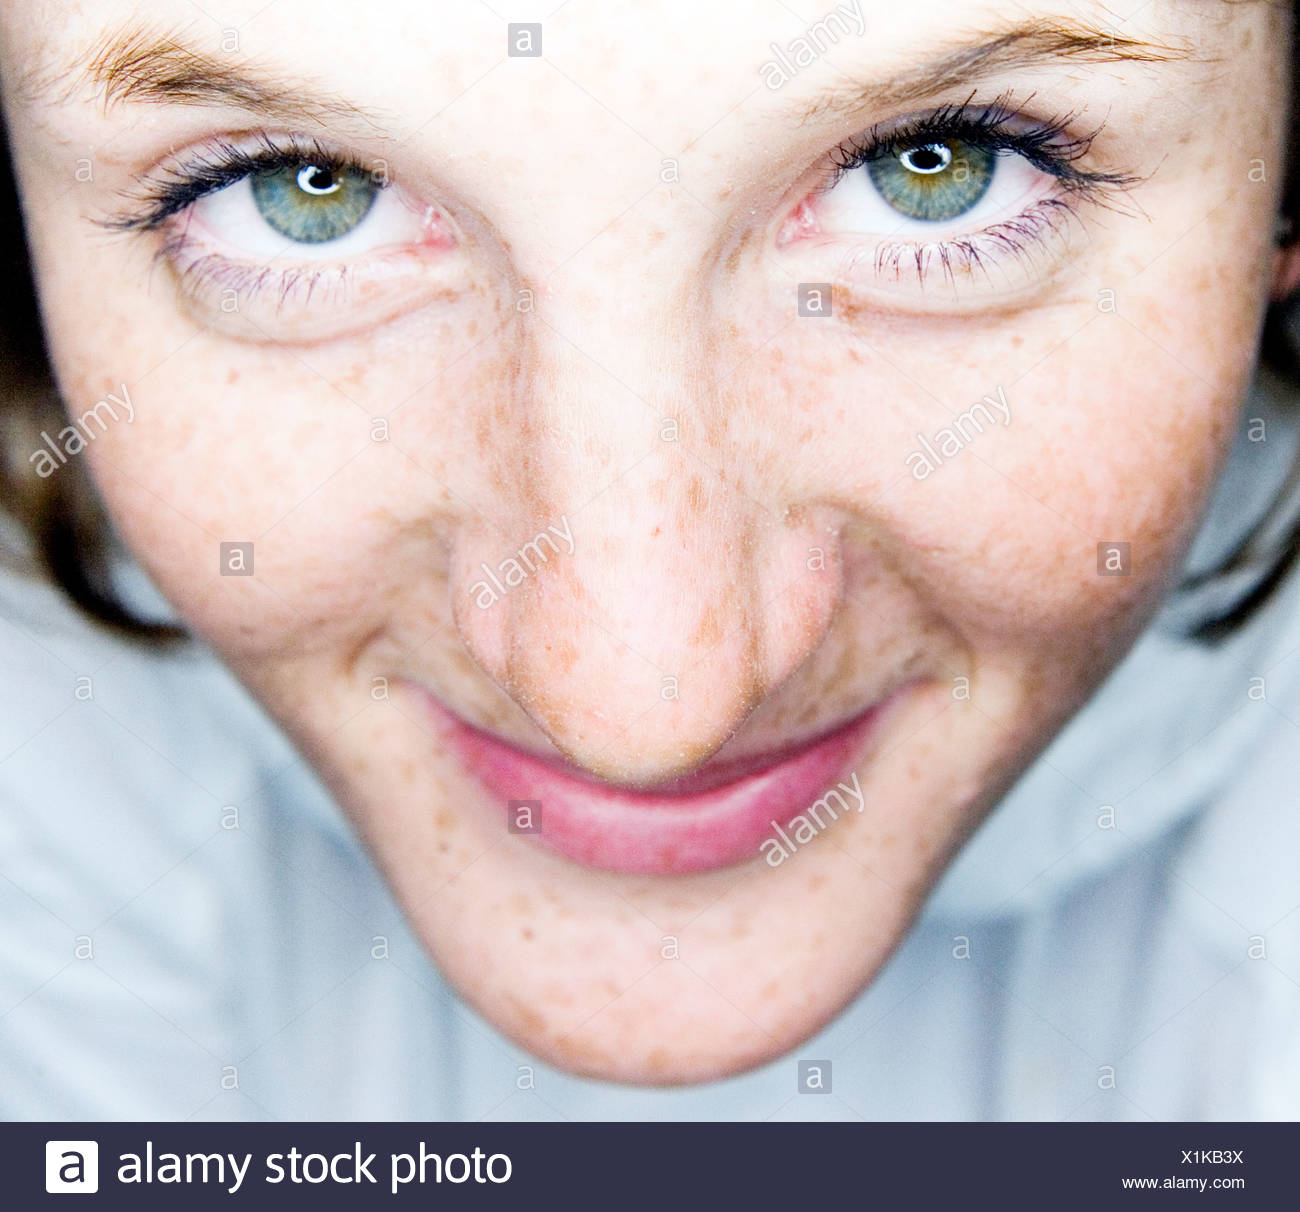 Detail of Freckled Face - Stock Image